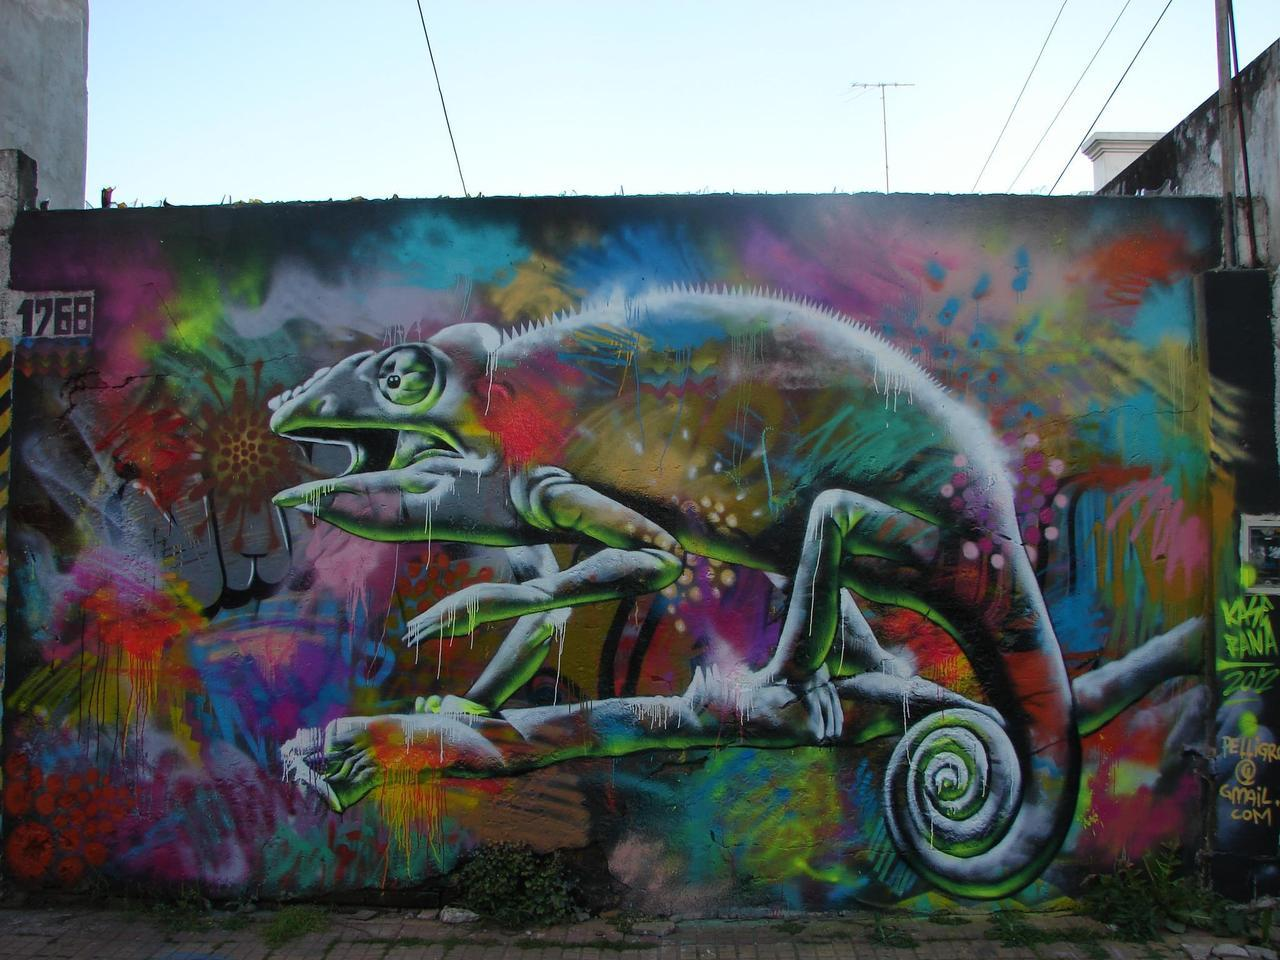 Just awesome! New wall by Argentina's Kase (www.facebook.com/pages/Emmanuel-Pellegrino-KASE-/128978737202839); photo came via RASA.